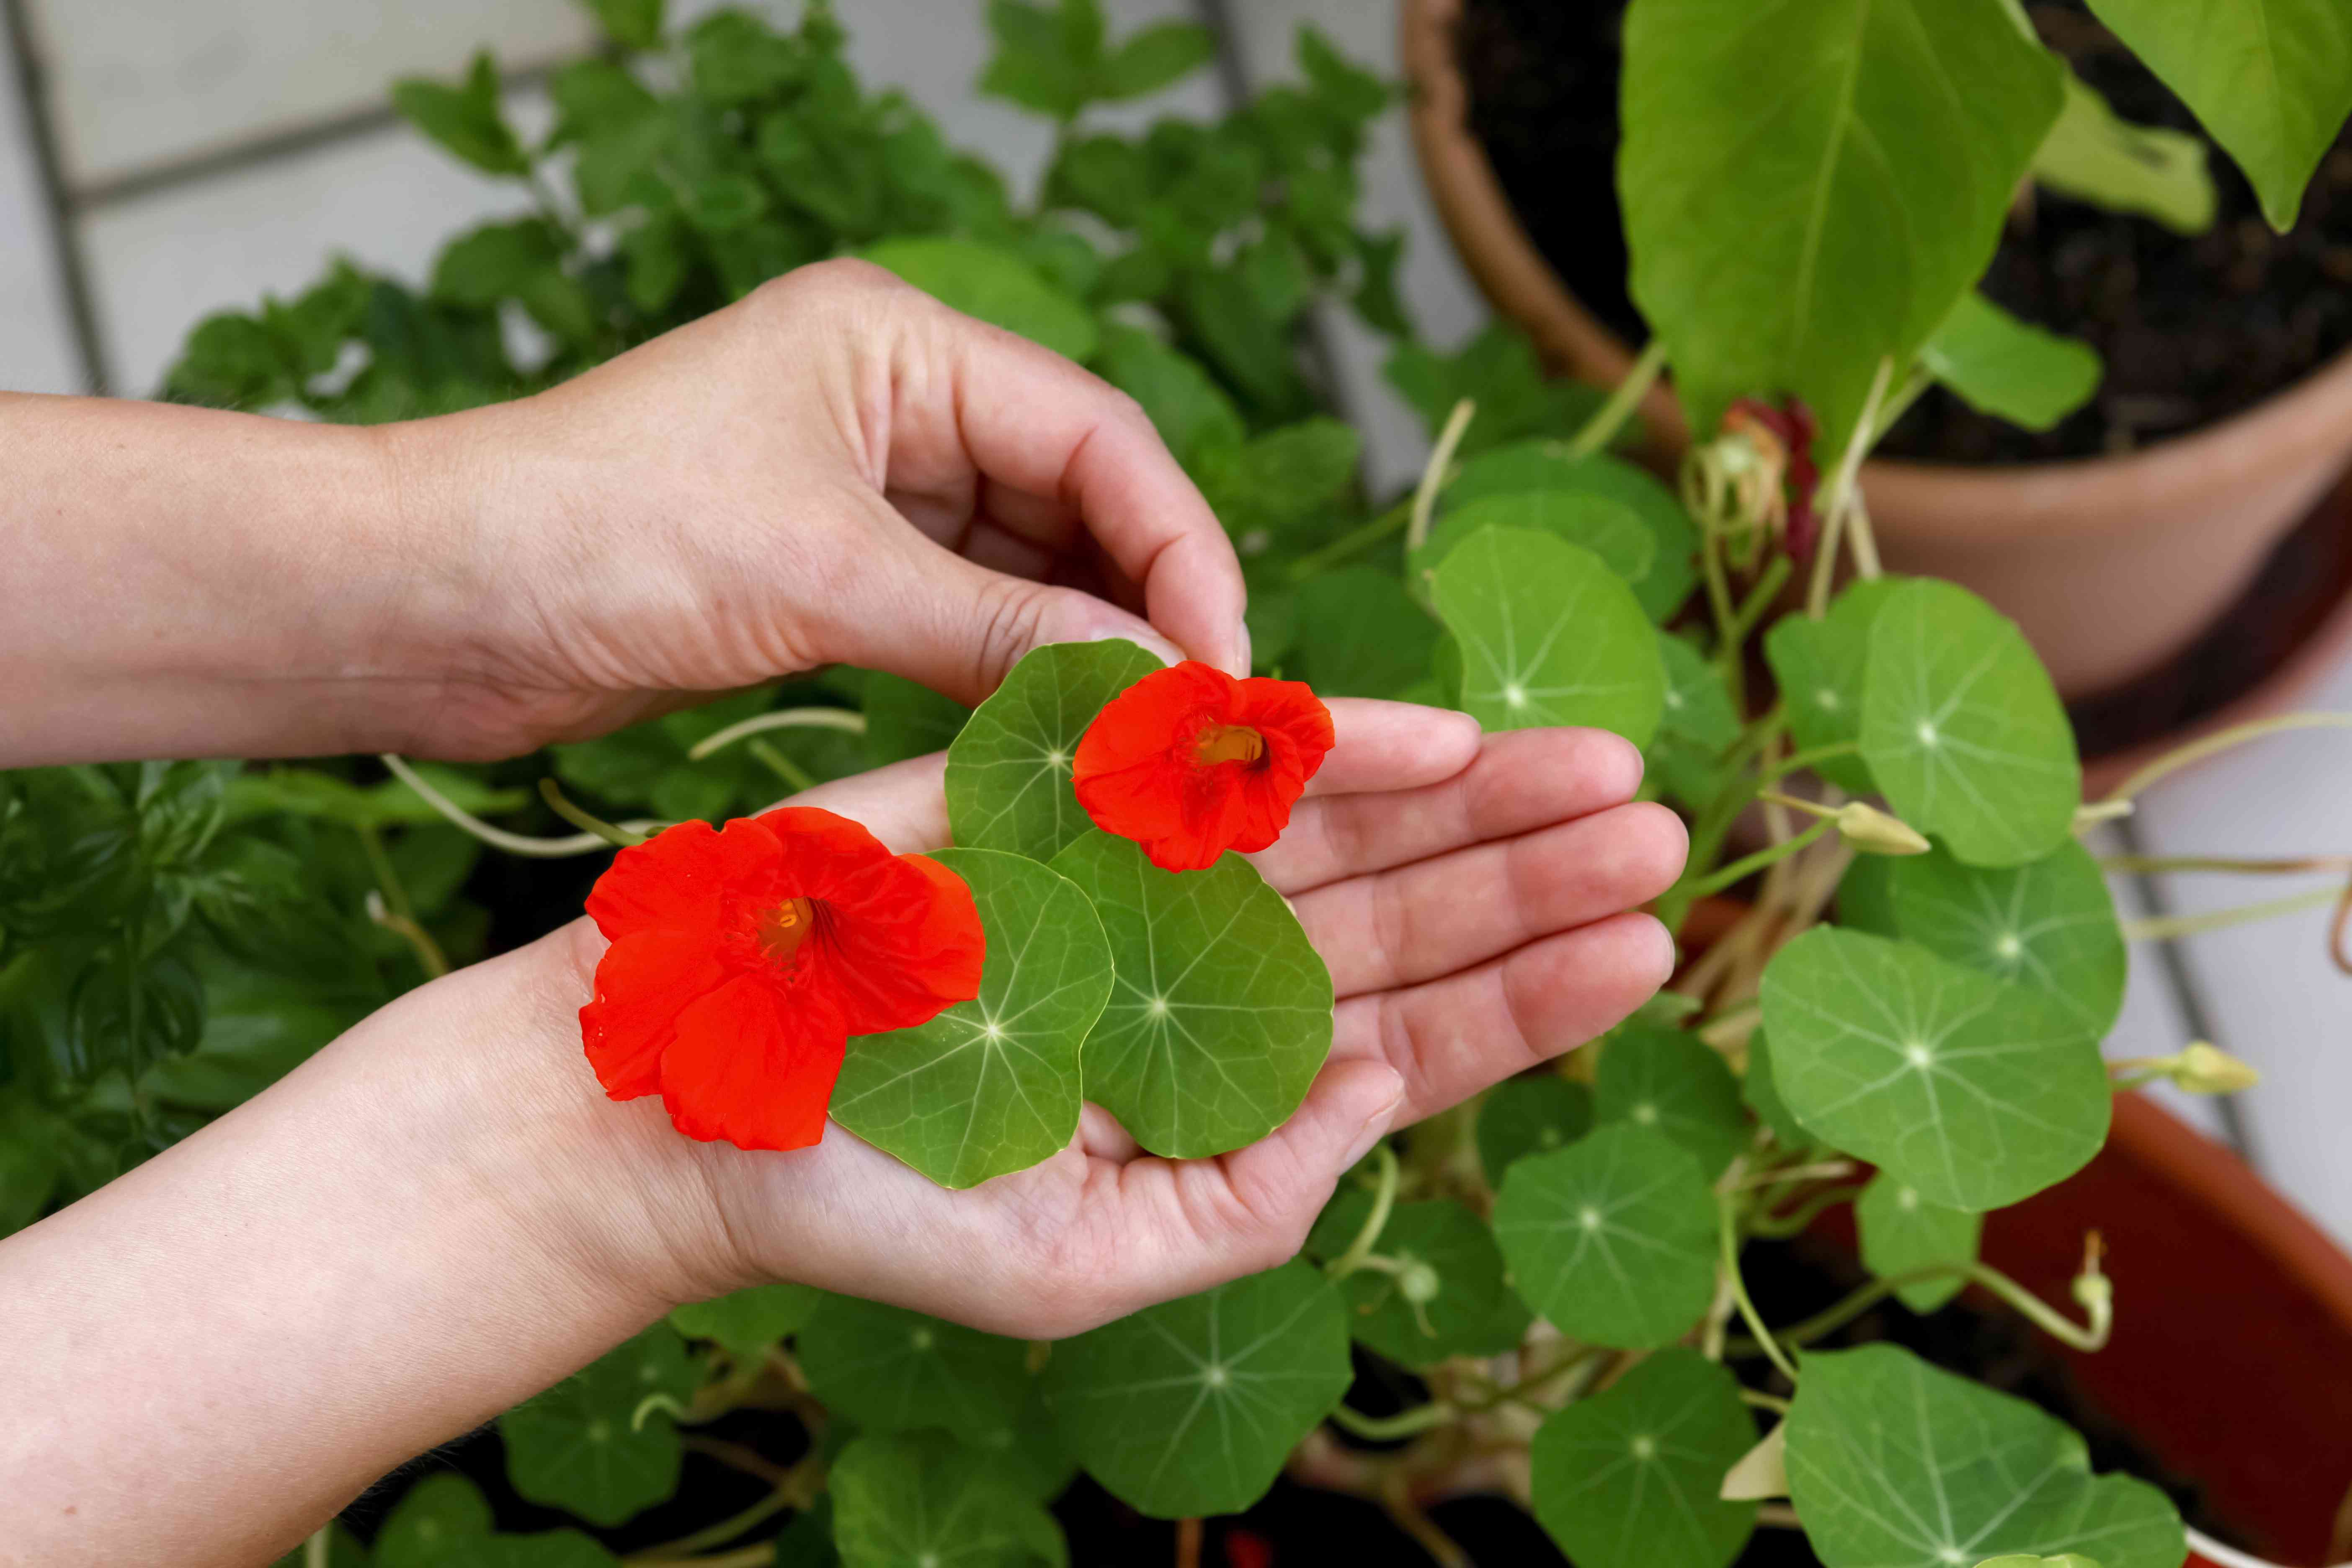 Person holding nasturtium flowers clipped from plant